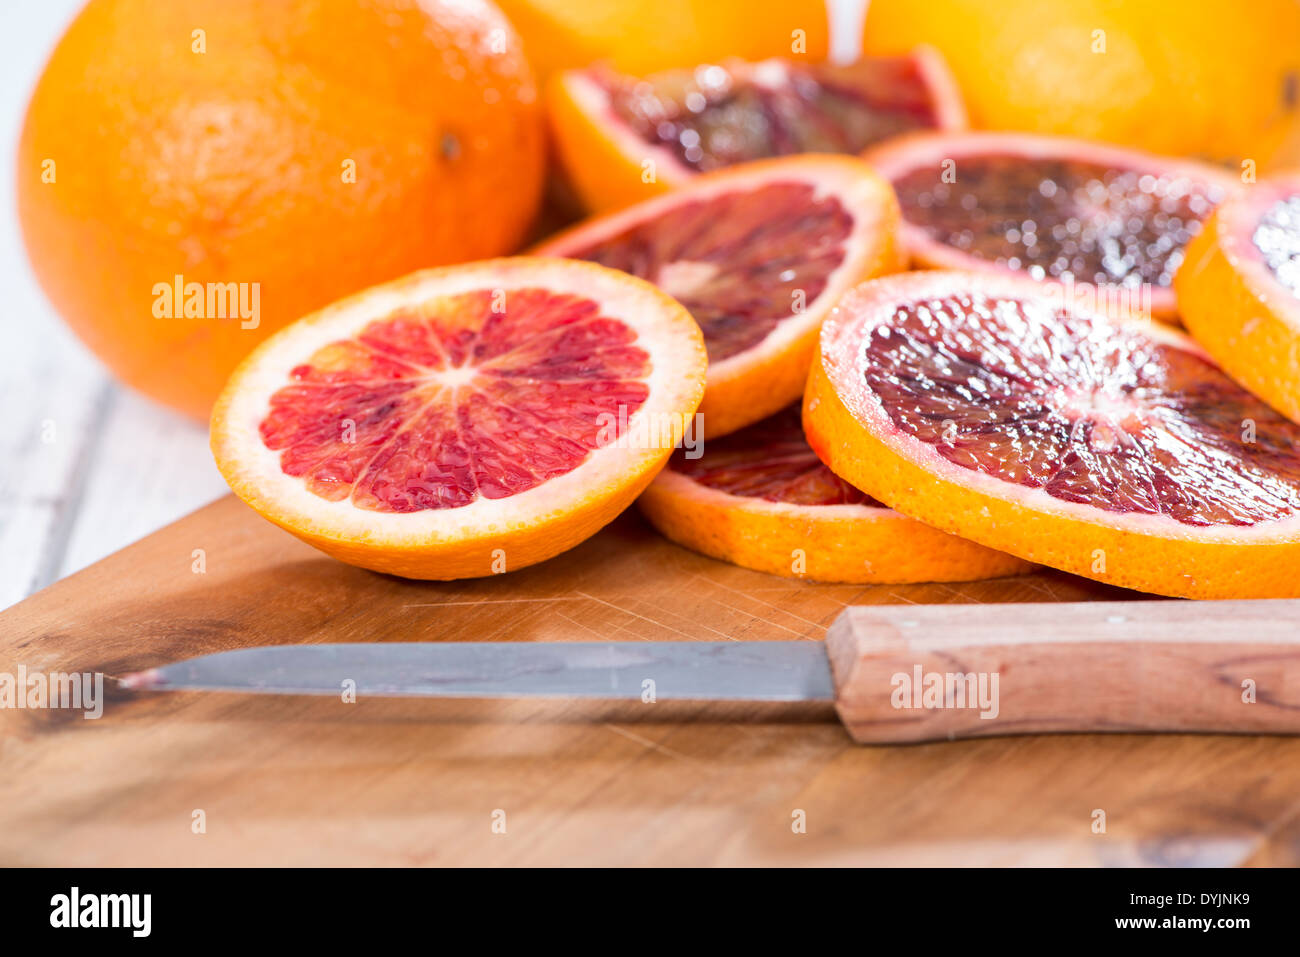 Portion of fresh and juicy Blood Orange on wooden background - Stock Image